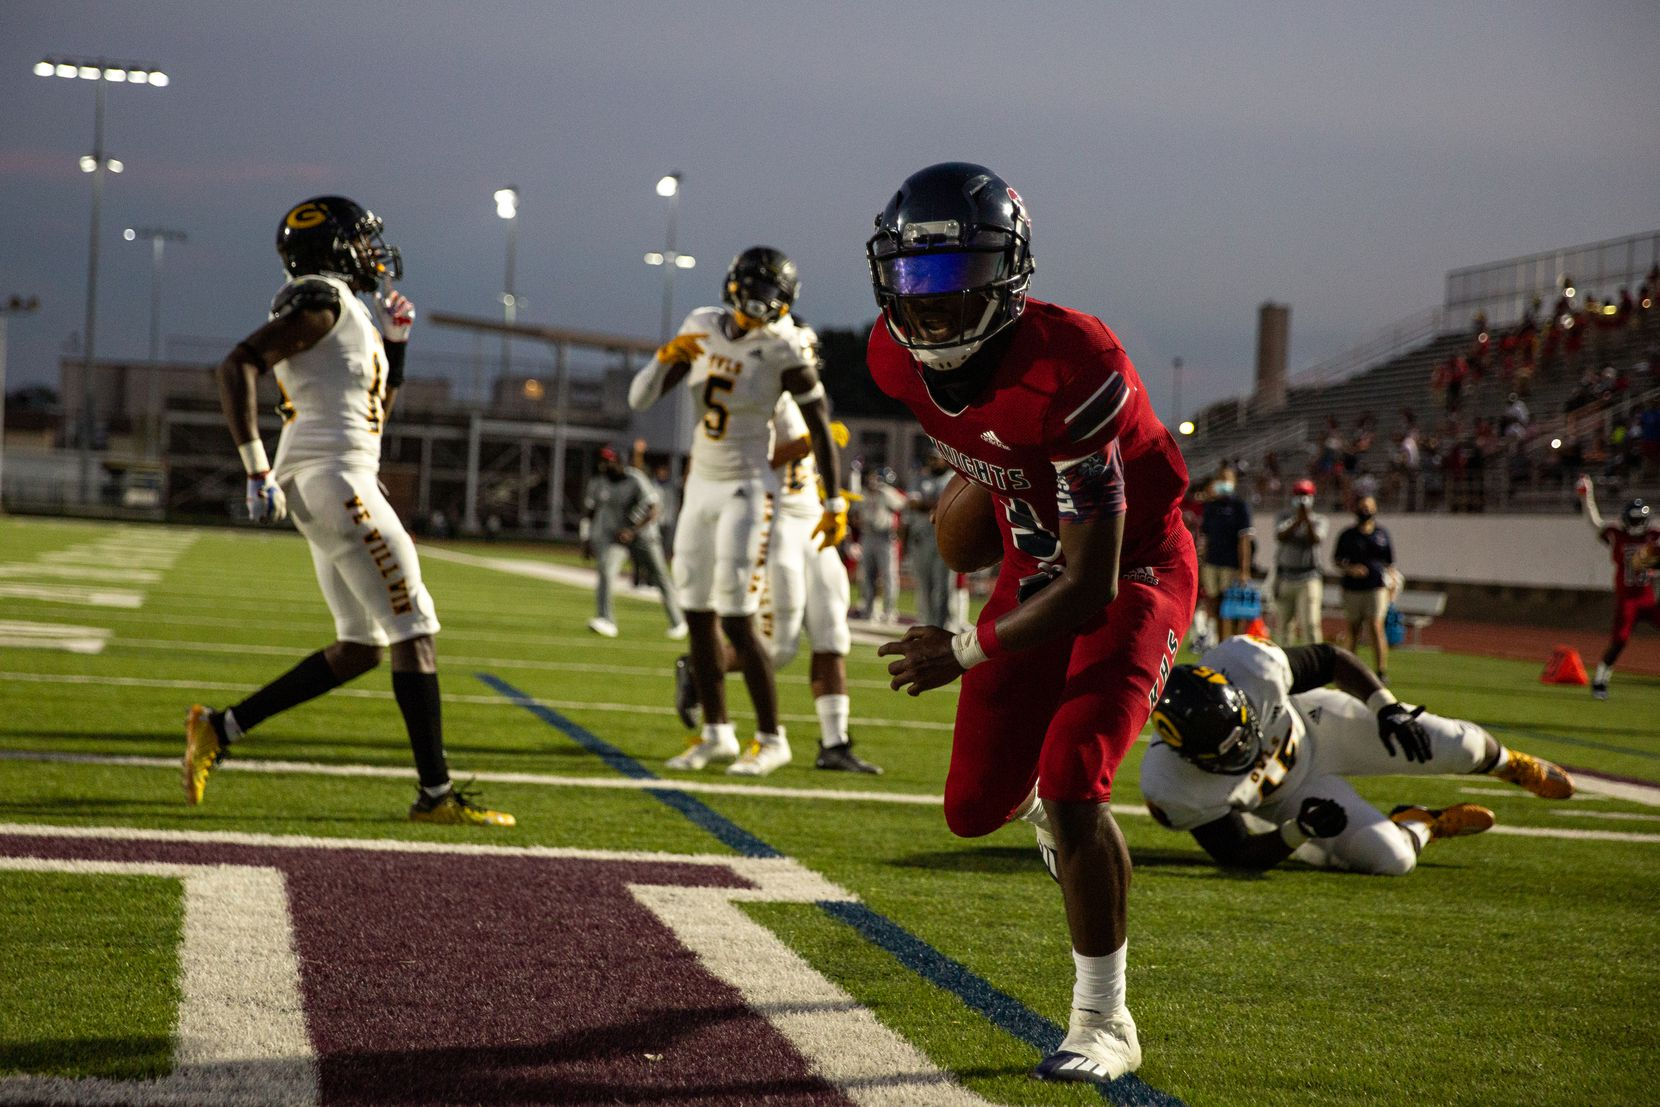 Justin F. Kimball High School's Jerqualan Parks (3) scores a touchdown a touchdown during the season-opening game against Garland High School at Sprague Stadium in Dallas, TX on August 27, 2021.   (Shelby Tauber/Special Contributor)